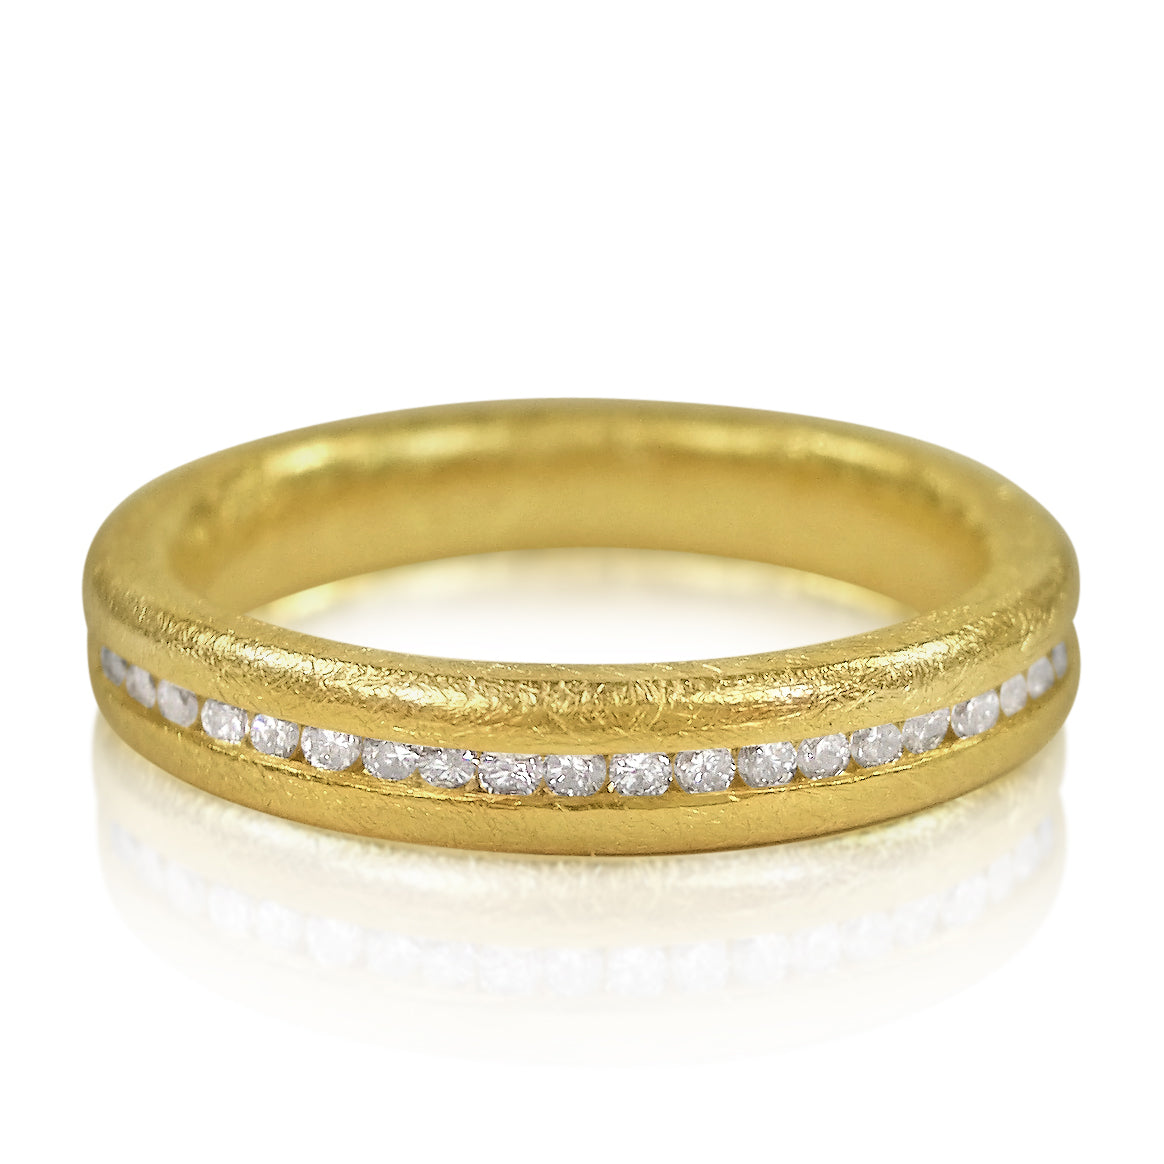 Shaped Wedding Ring: 18ct Yellow Gold & Diamonds